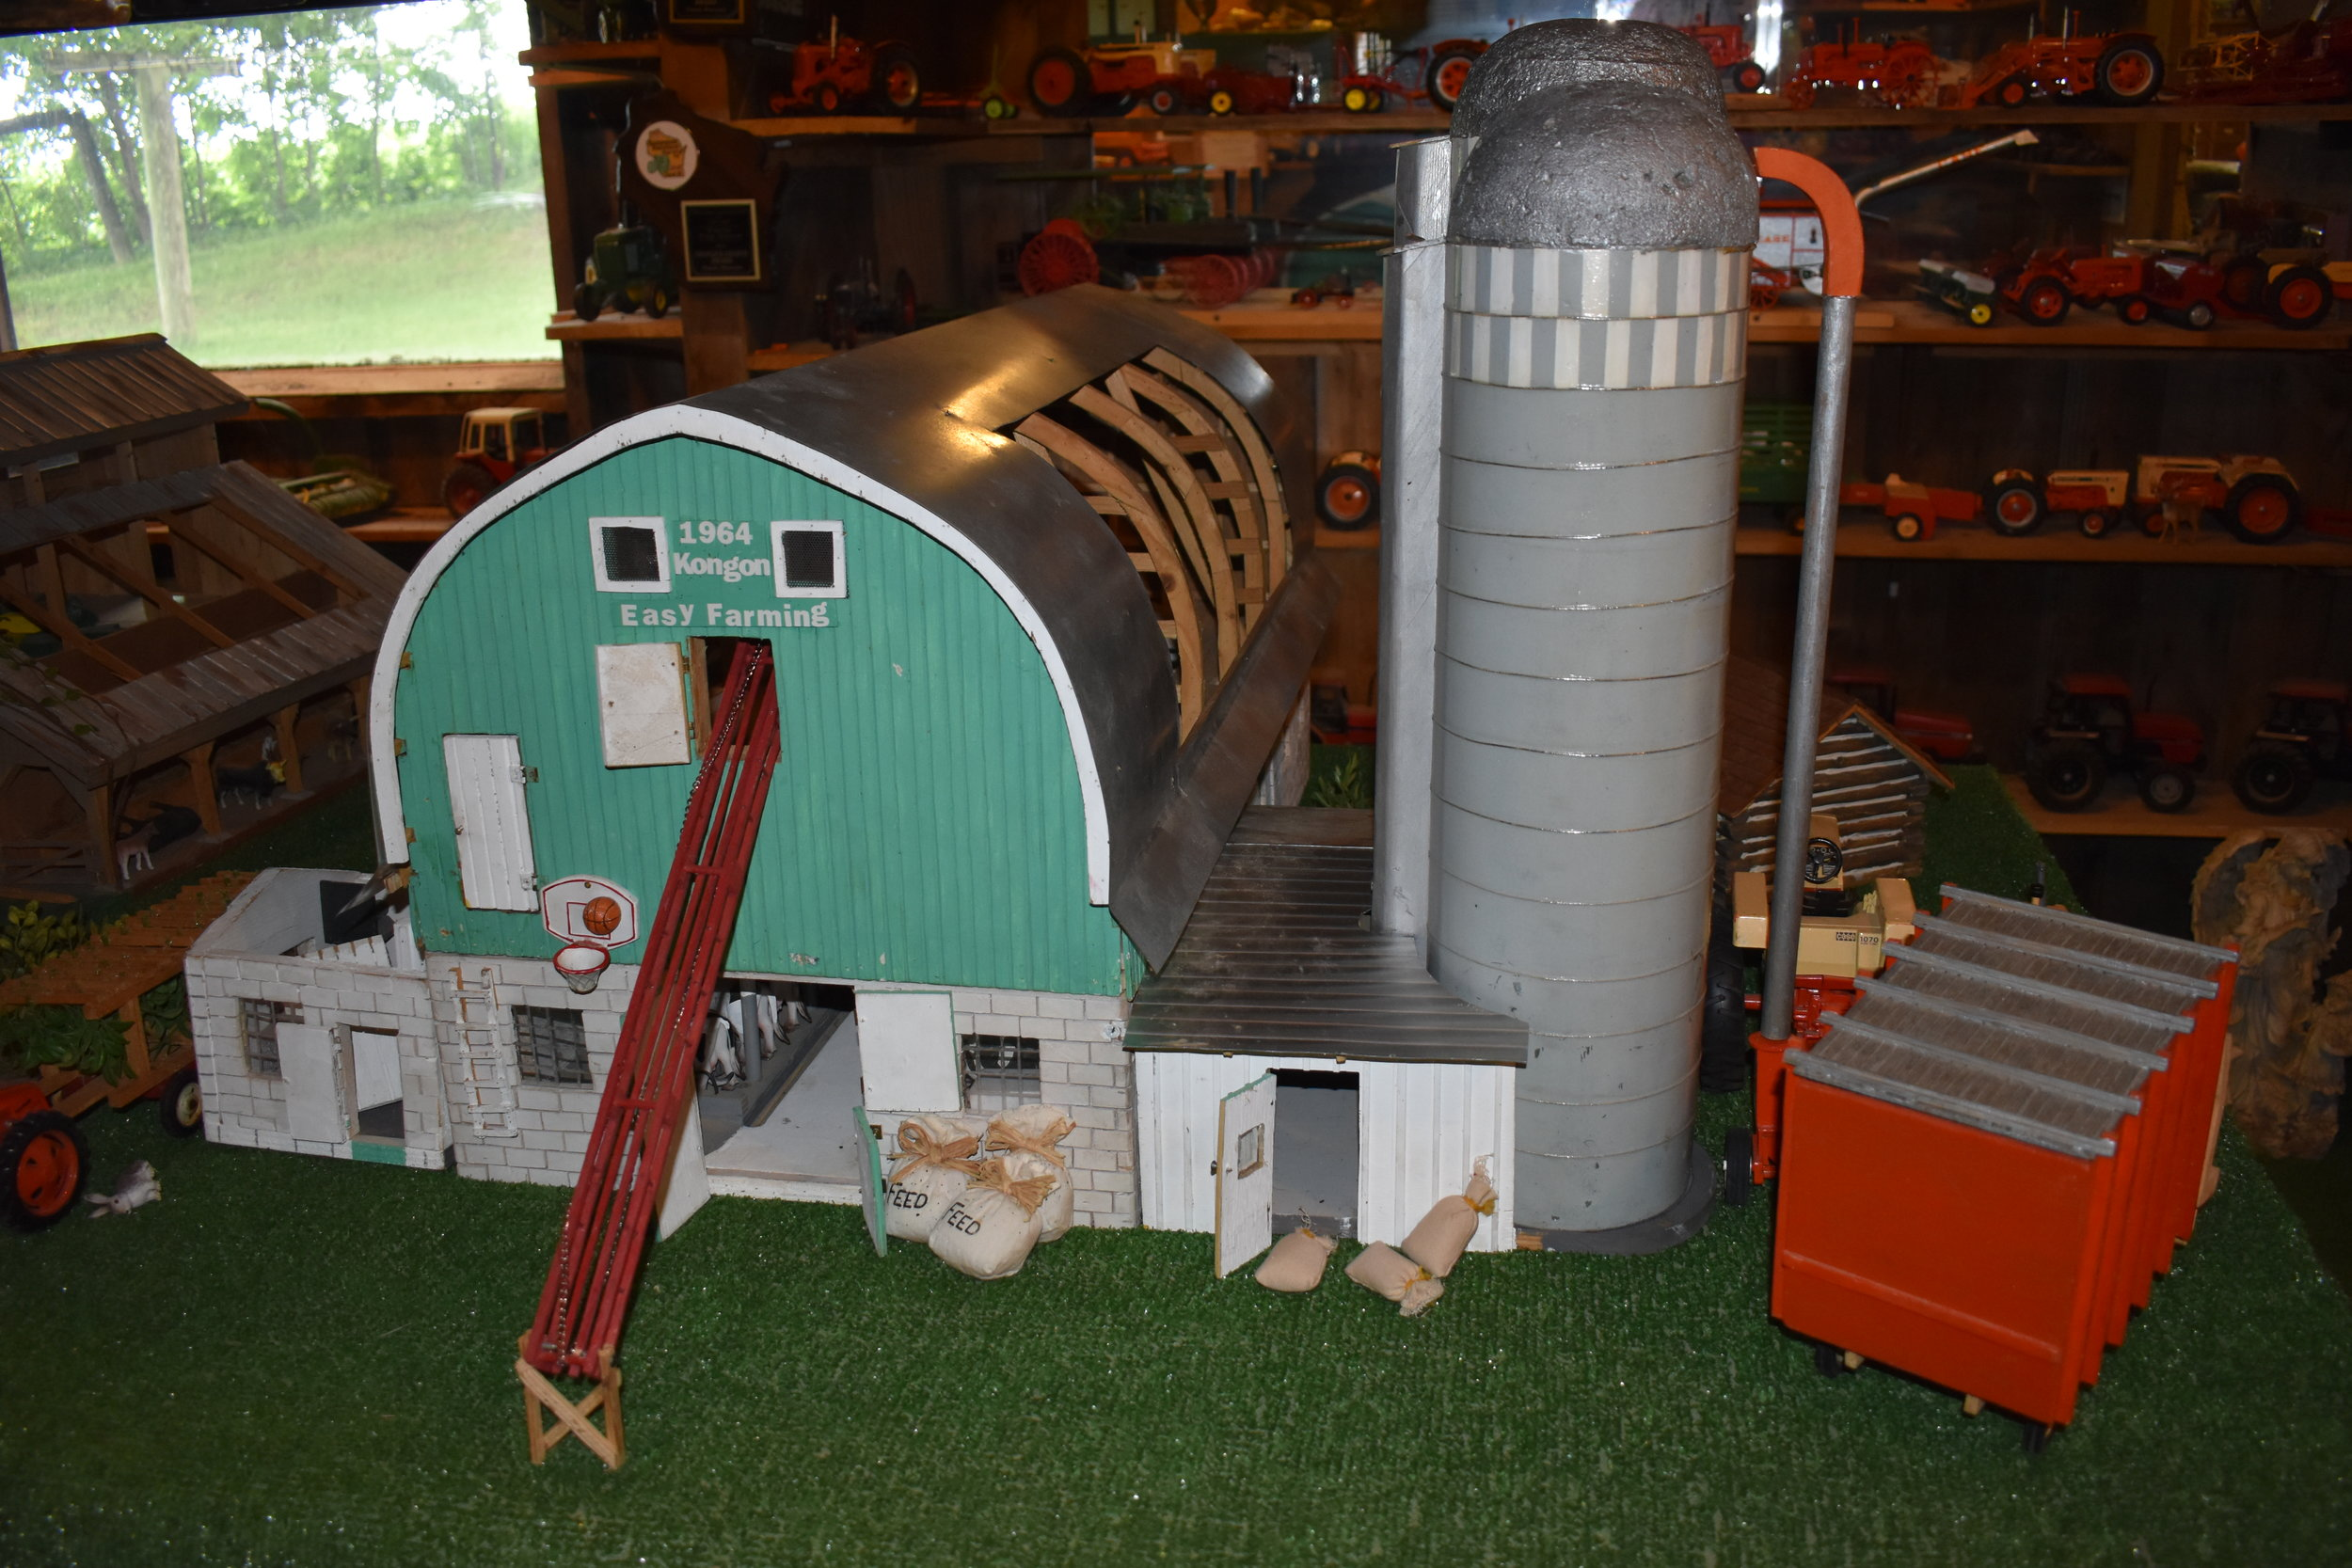 Randy's father's model barn that  inspired him